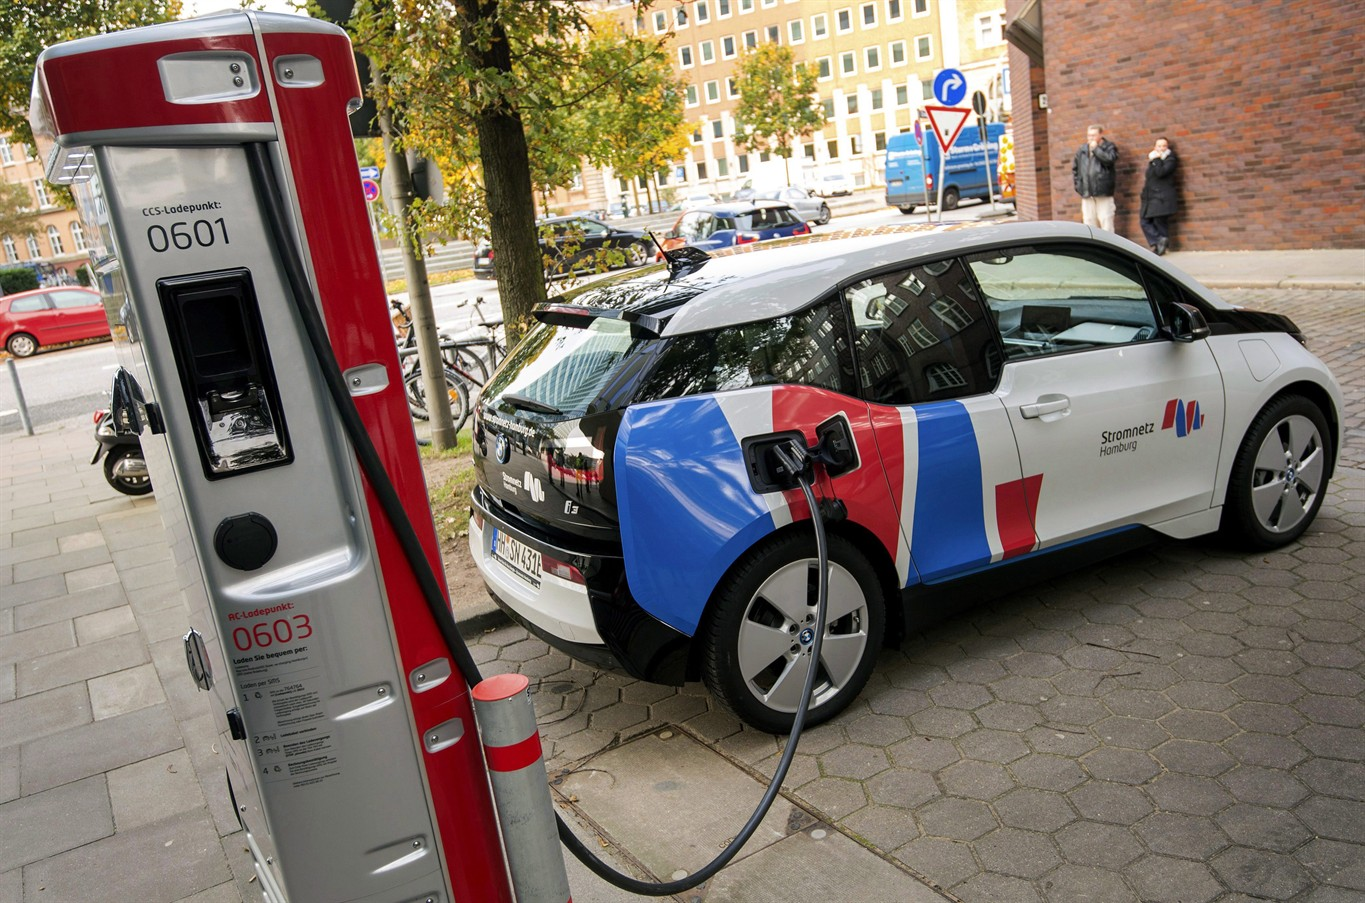 Ontario offers incentives for electric vehicle charging